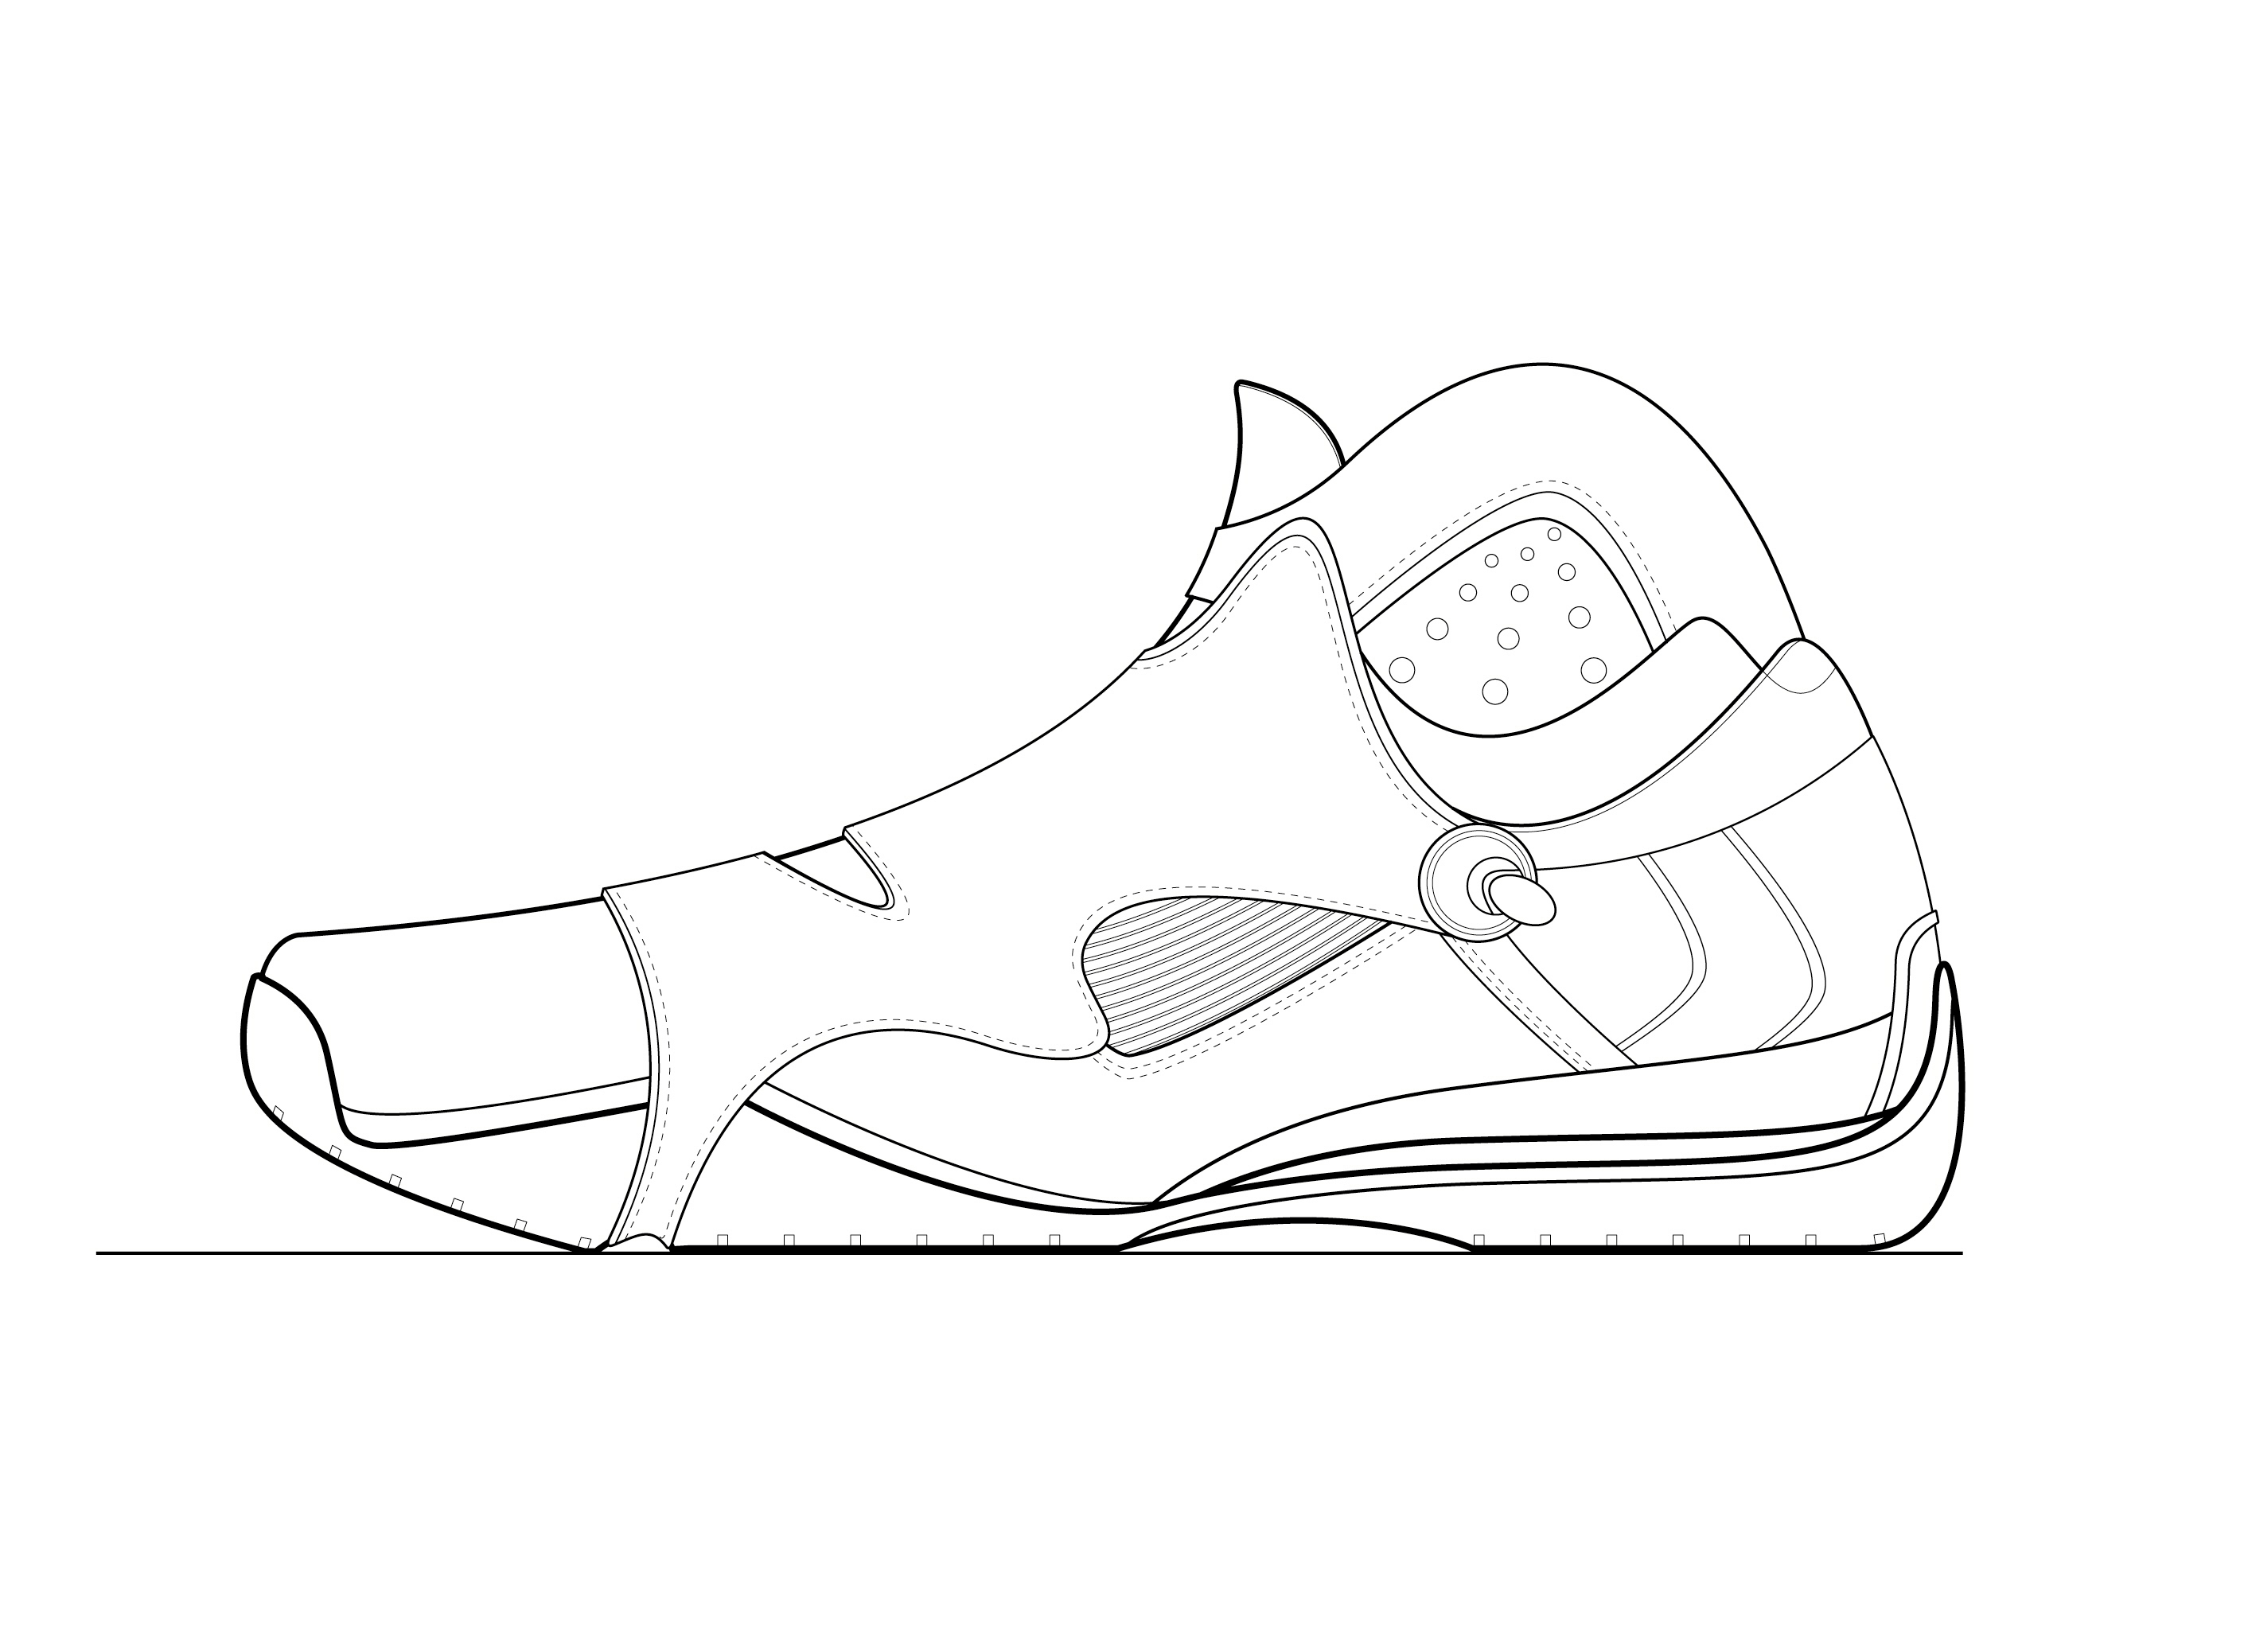 kd nike shoes coloring pages - photo#36